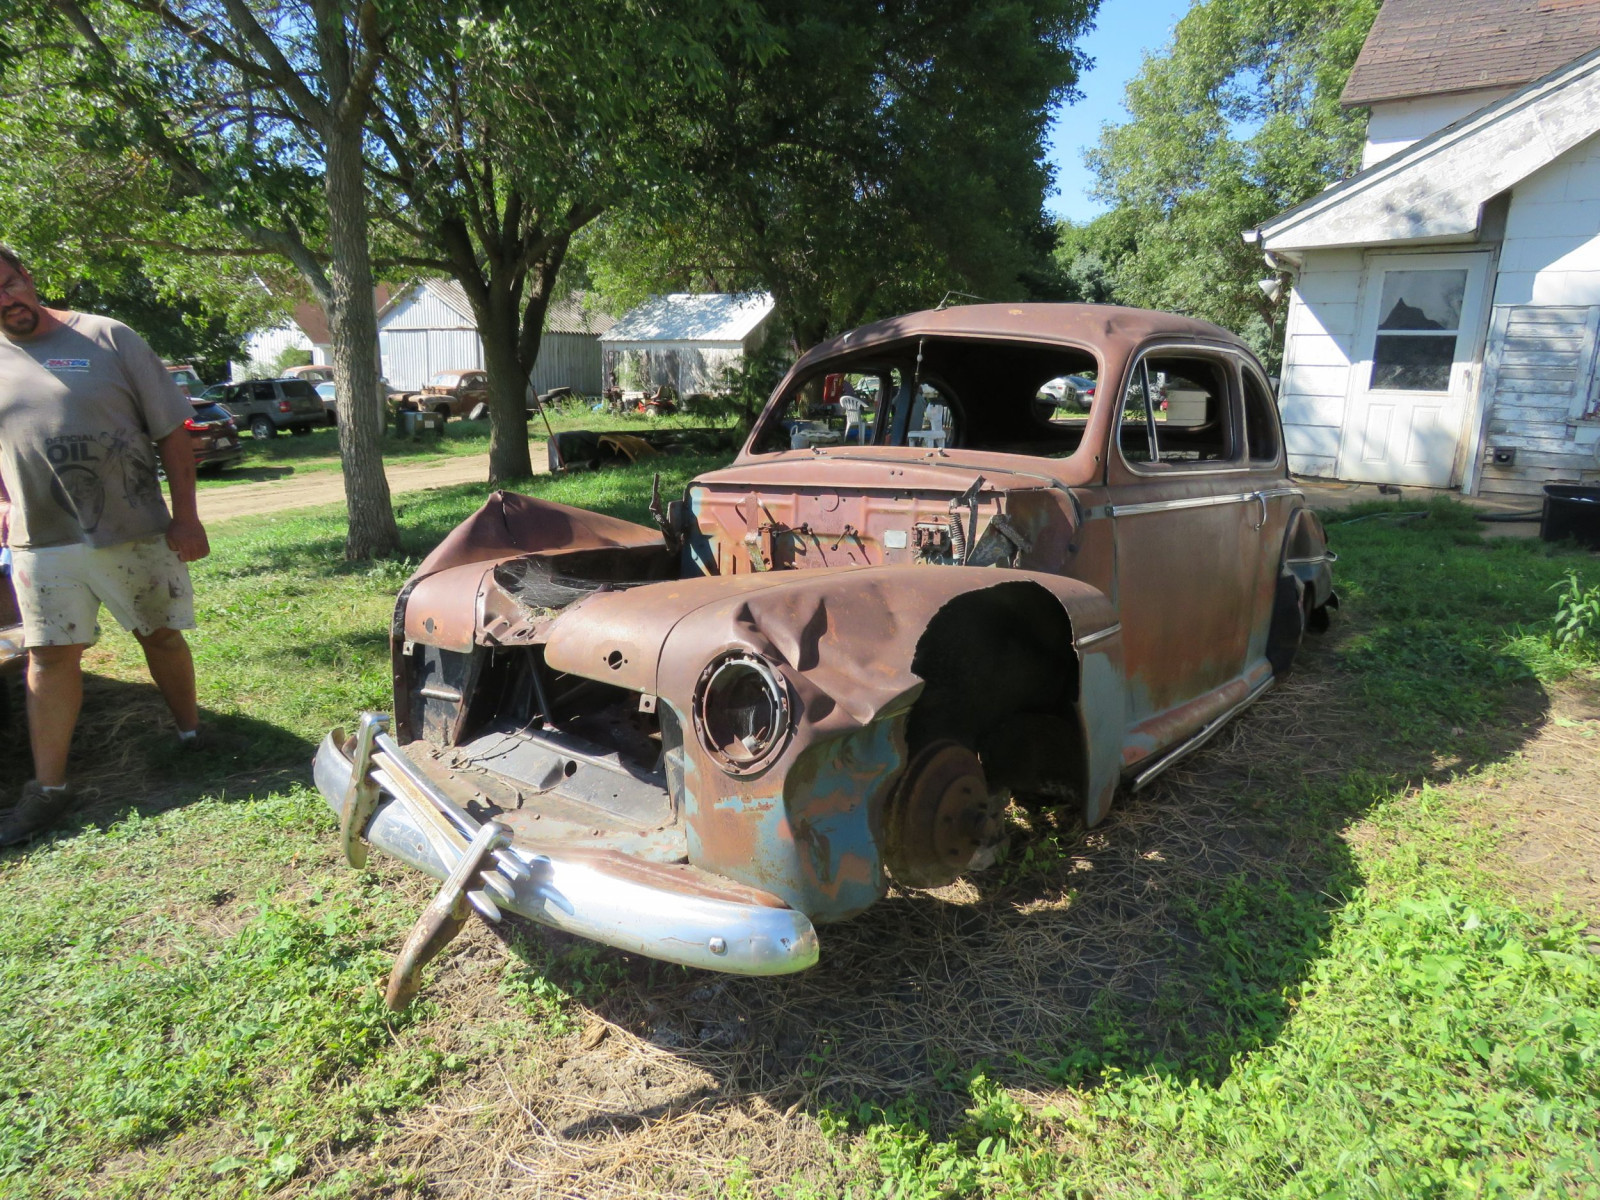 1946 Ford 2dr Sedan for Project or Parts - Image 2